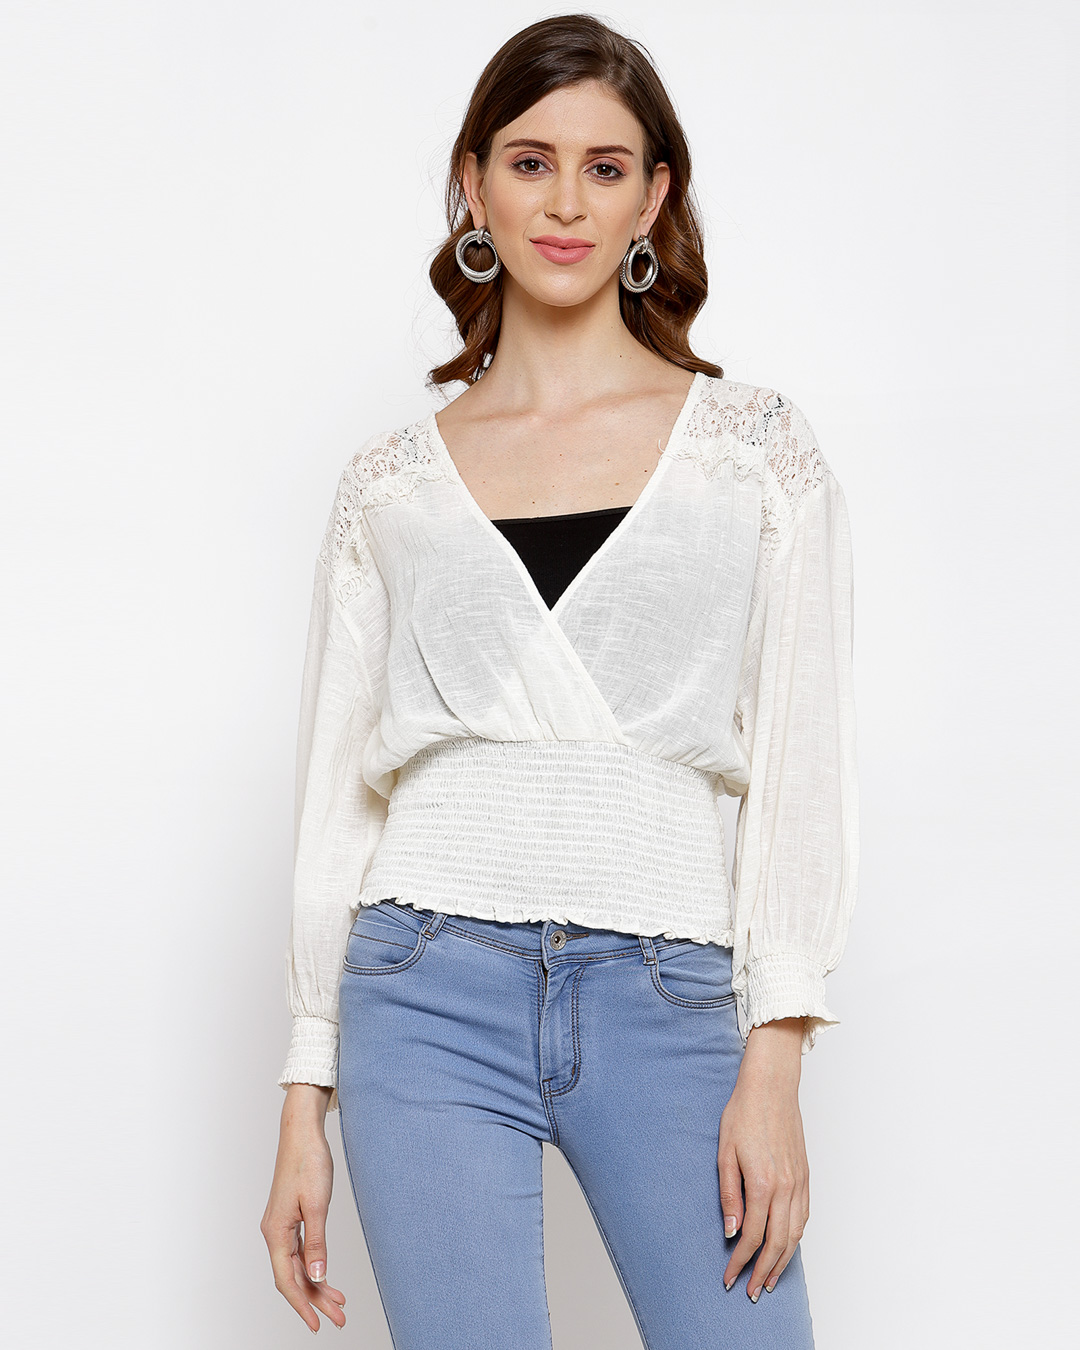 Lace Insert Top With Smocked Waist